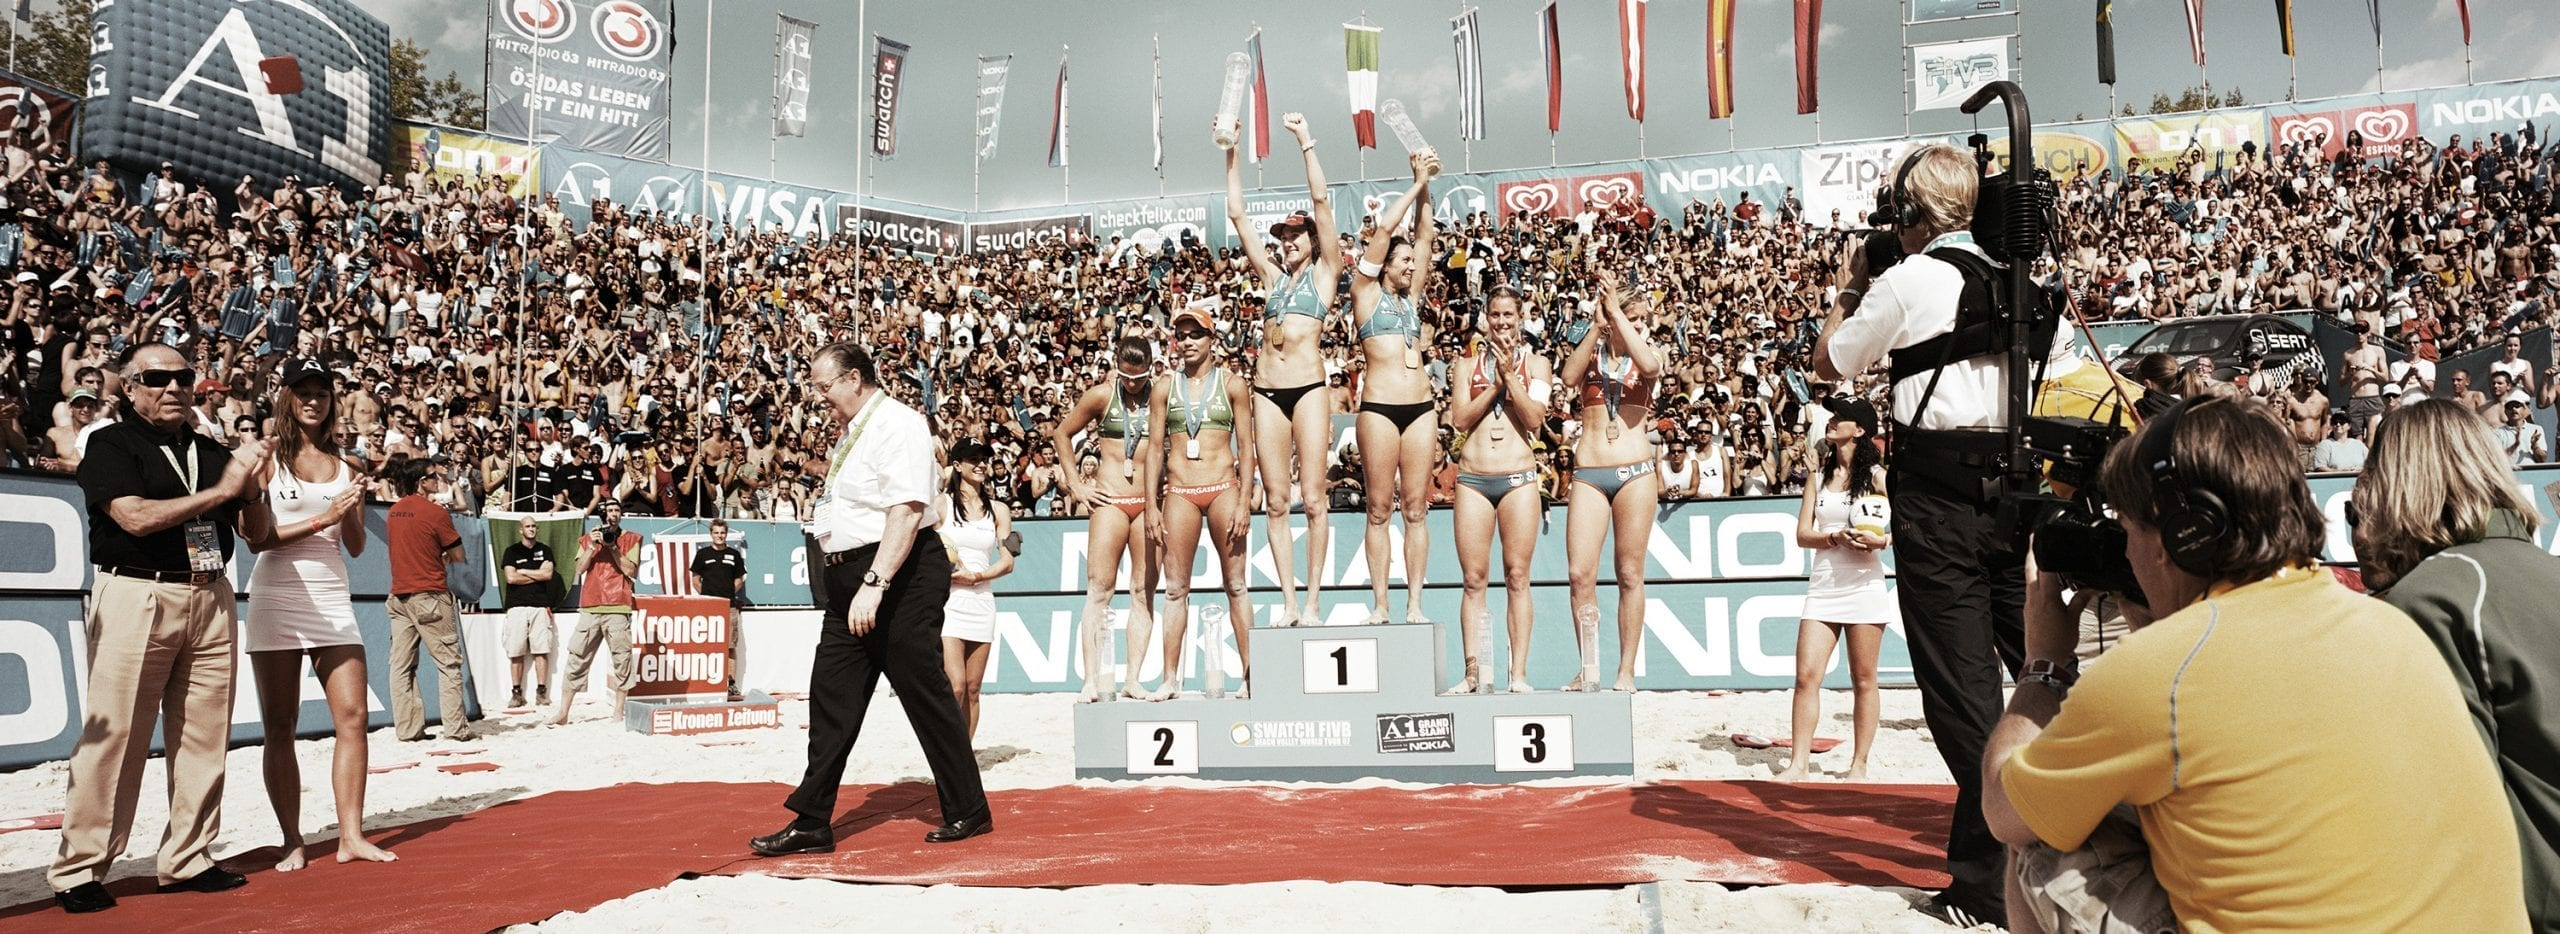 GRAND SLAM_Beachvolleyball